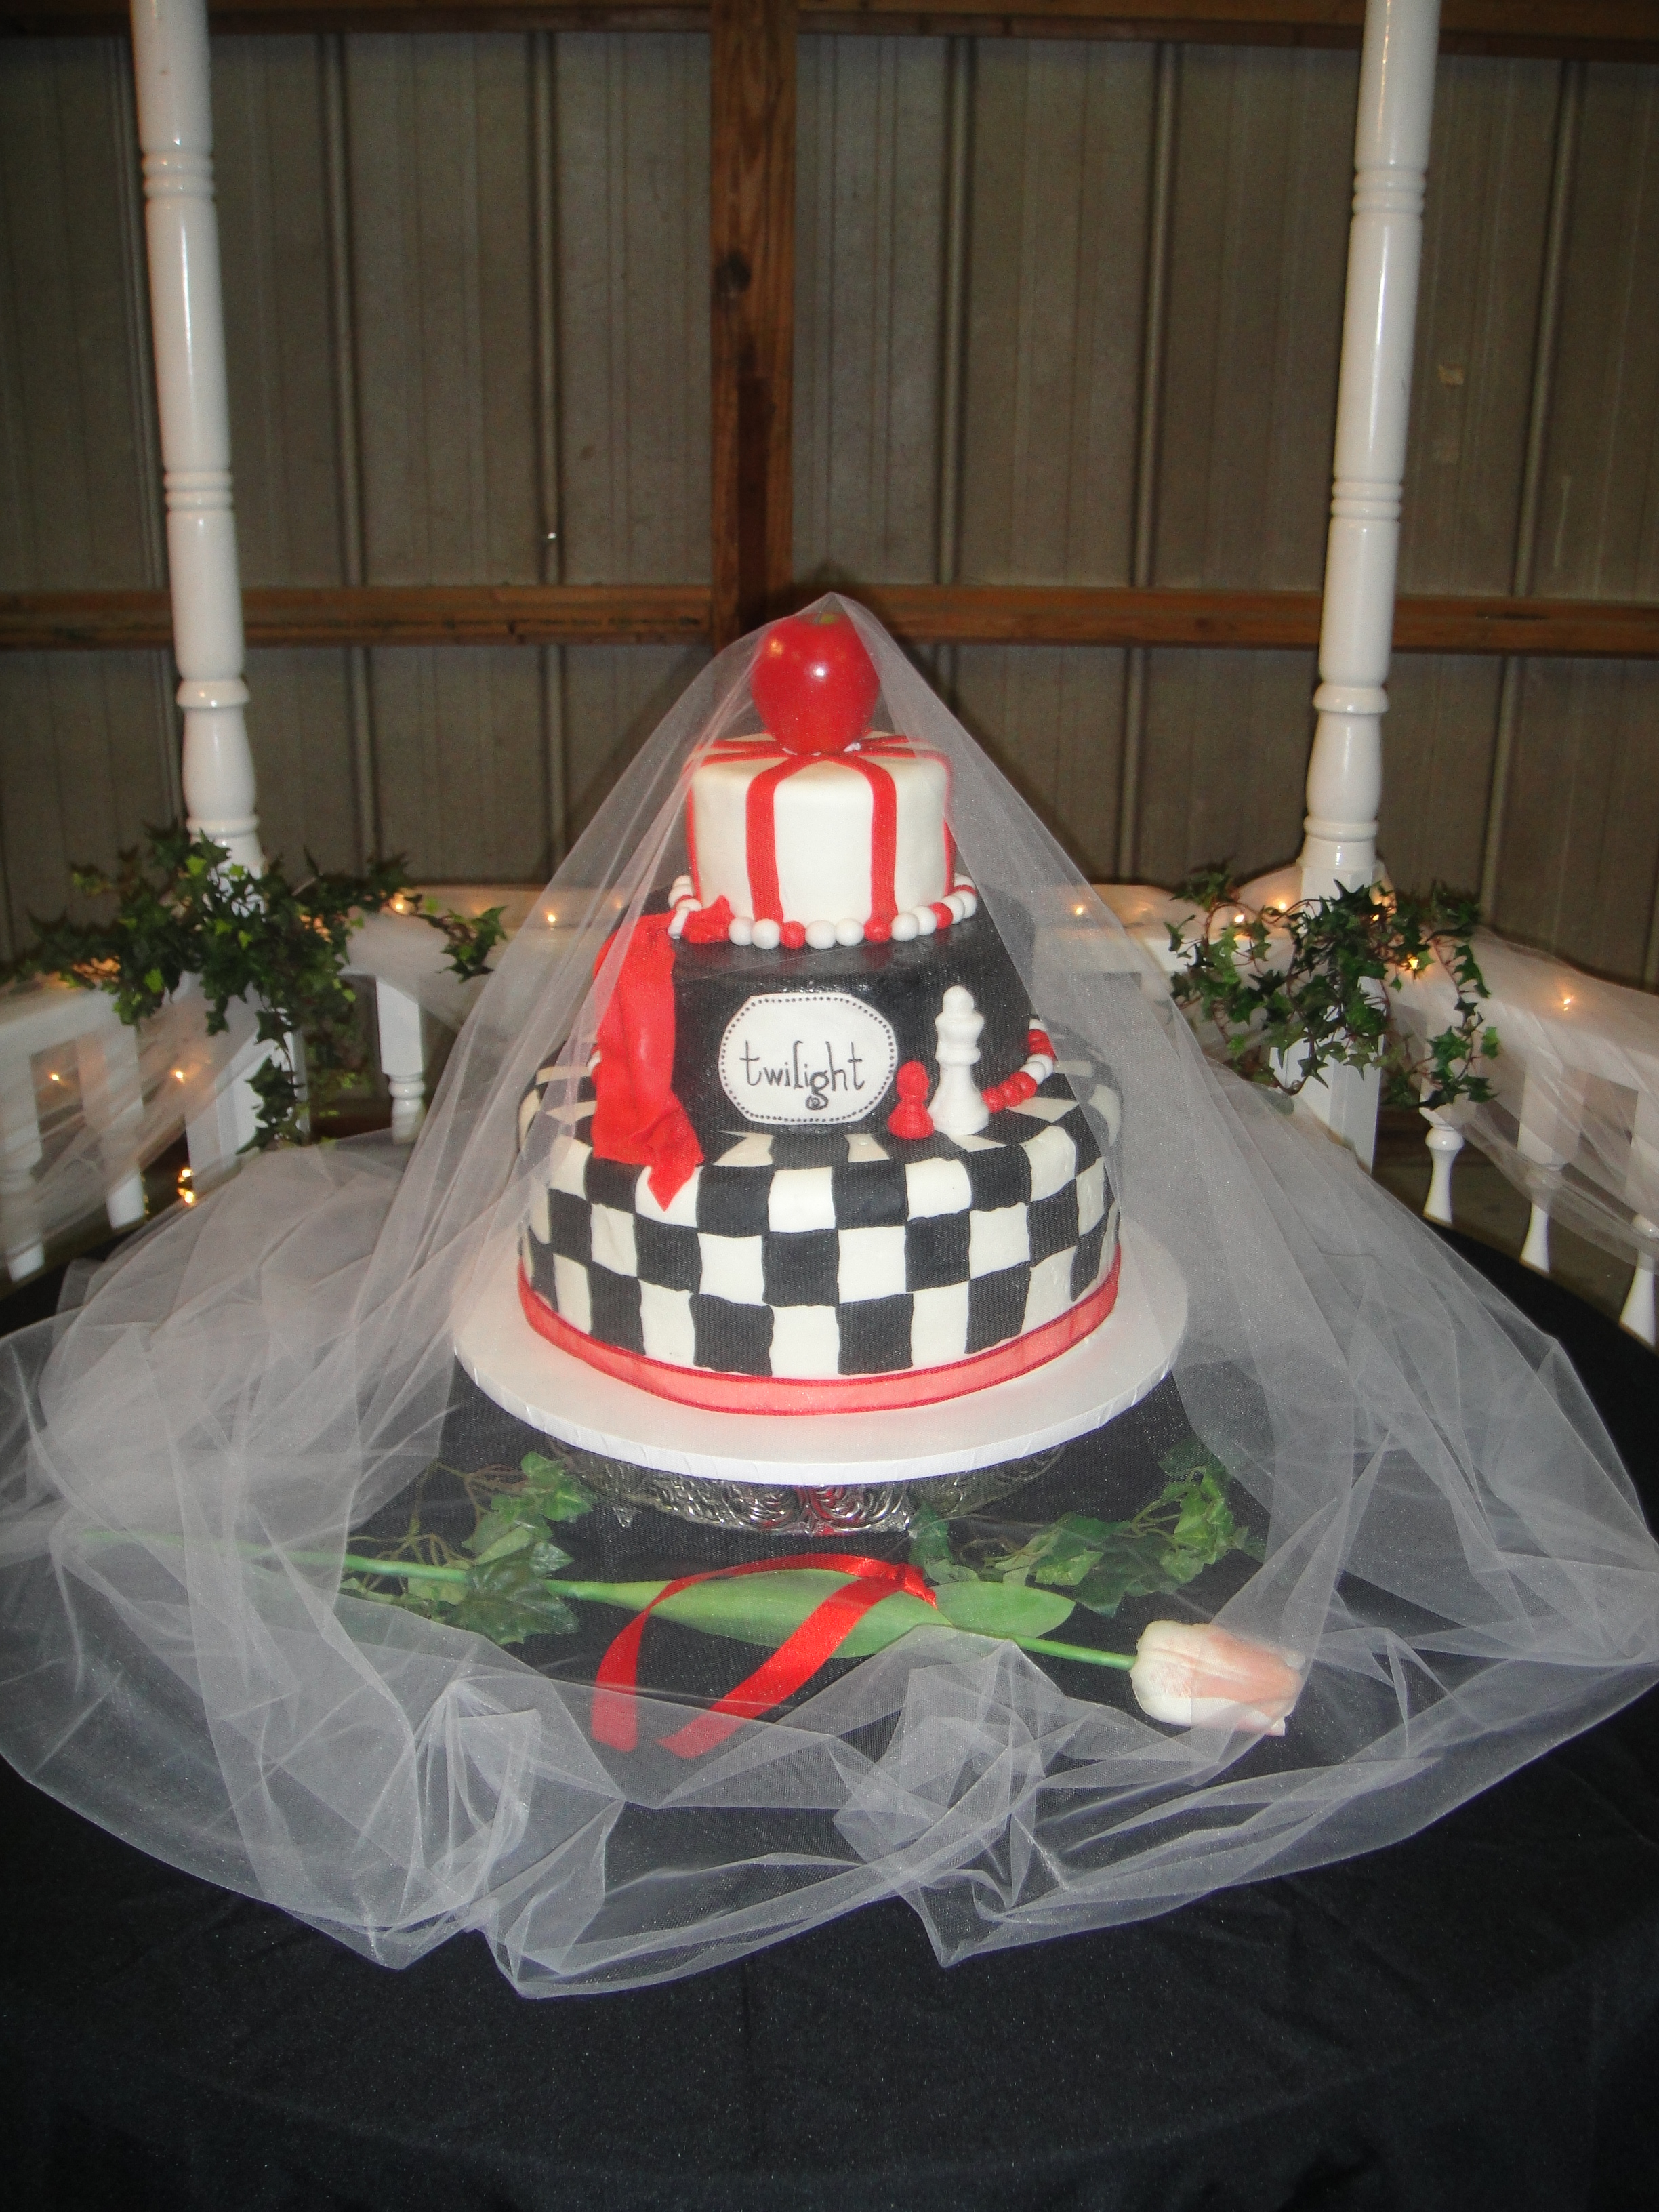 Pin Edward Twilight Cake Ideas And Designs